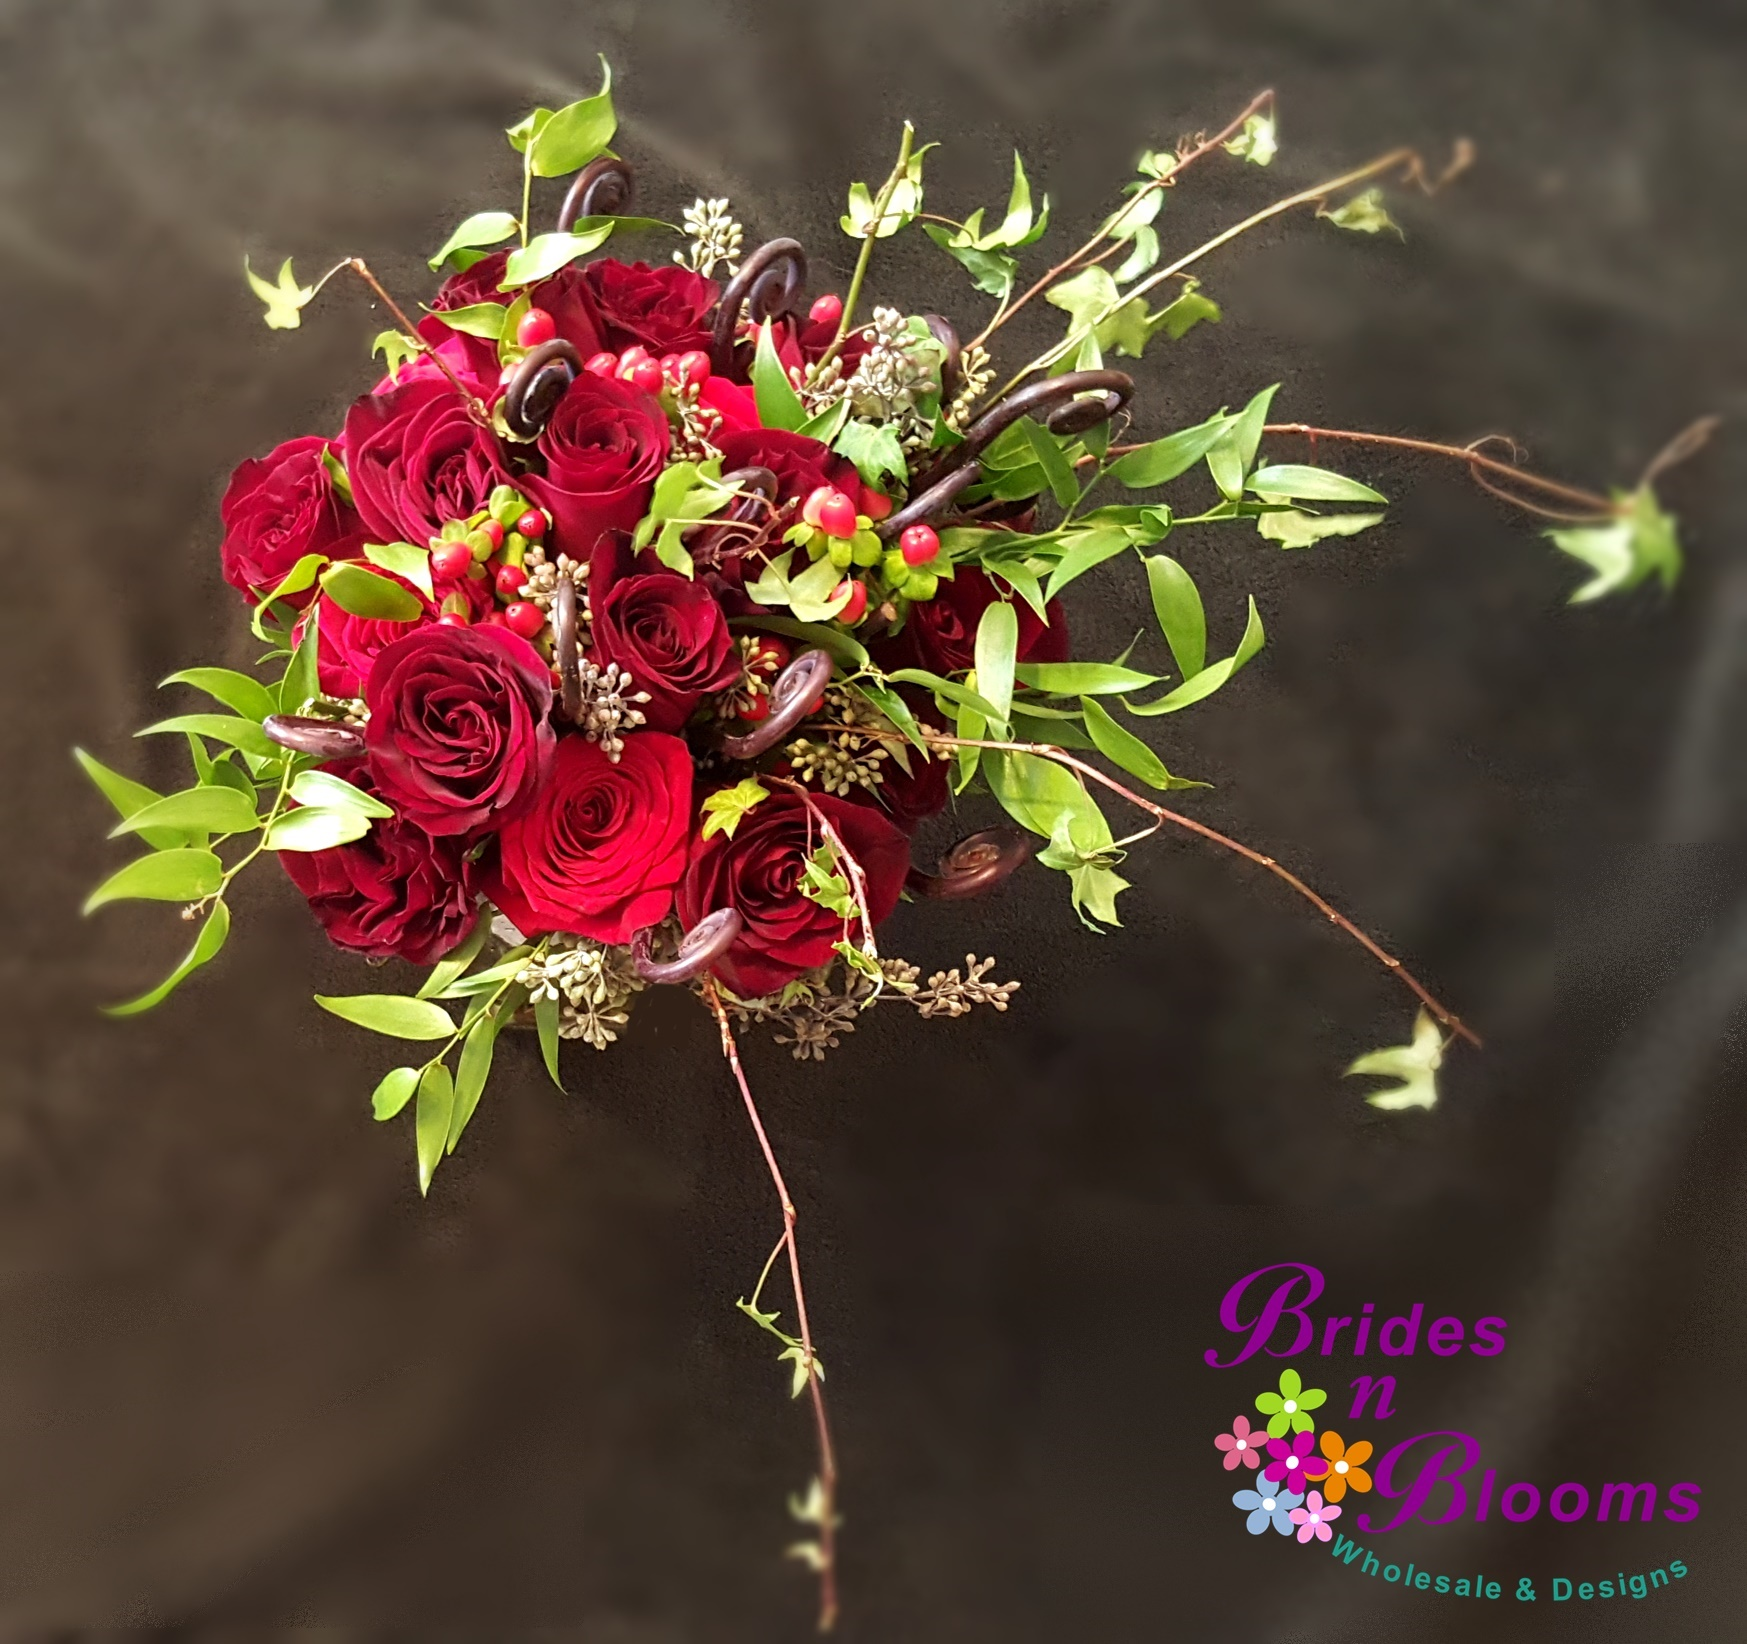 Ivy & Seeded Eucalyptus greenery with Red Roses, Hypericum Berry and Fiddle Fern